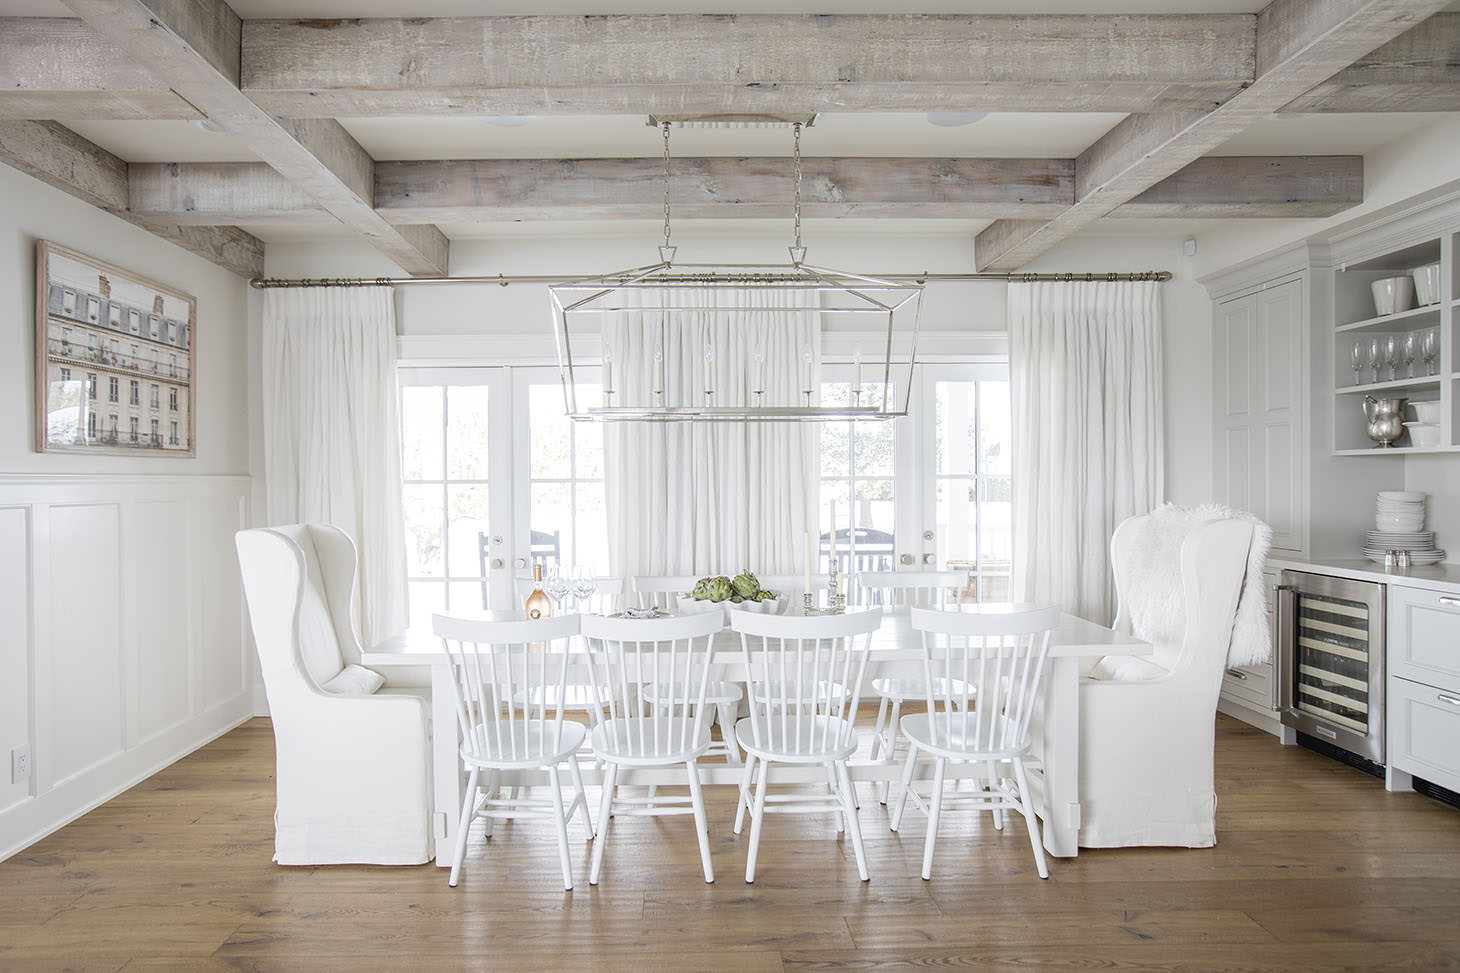 How to get the Farmhouse Style Dining Room